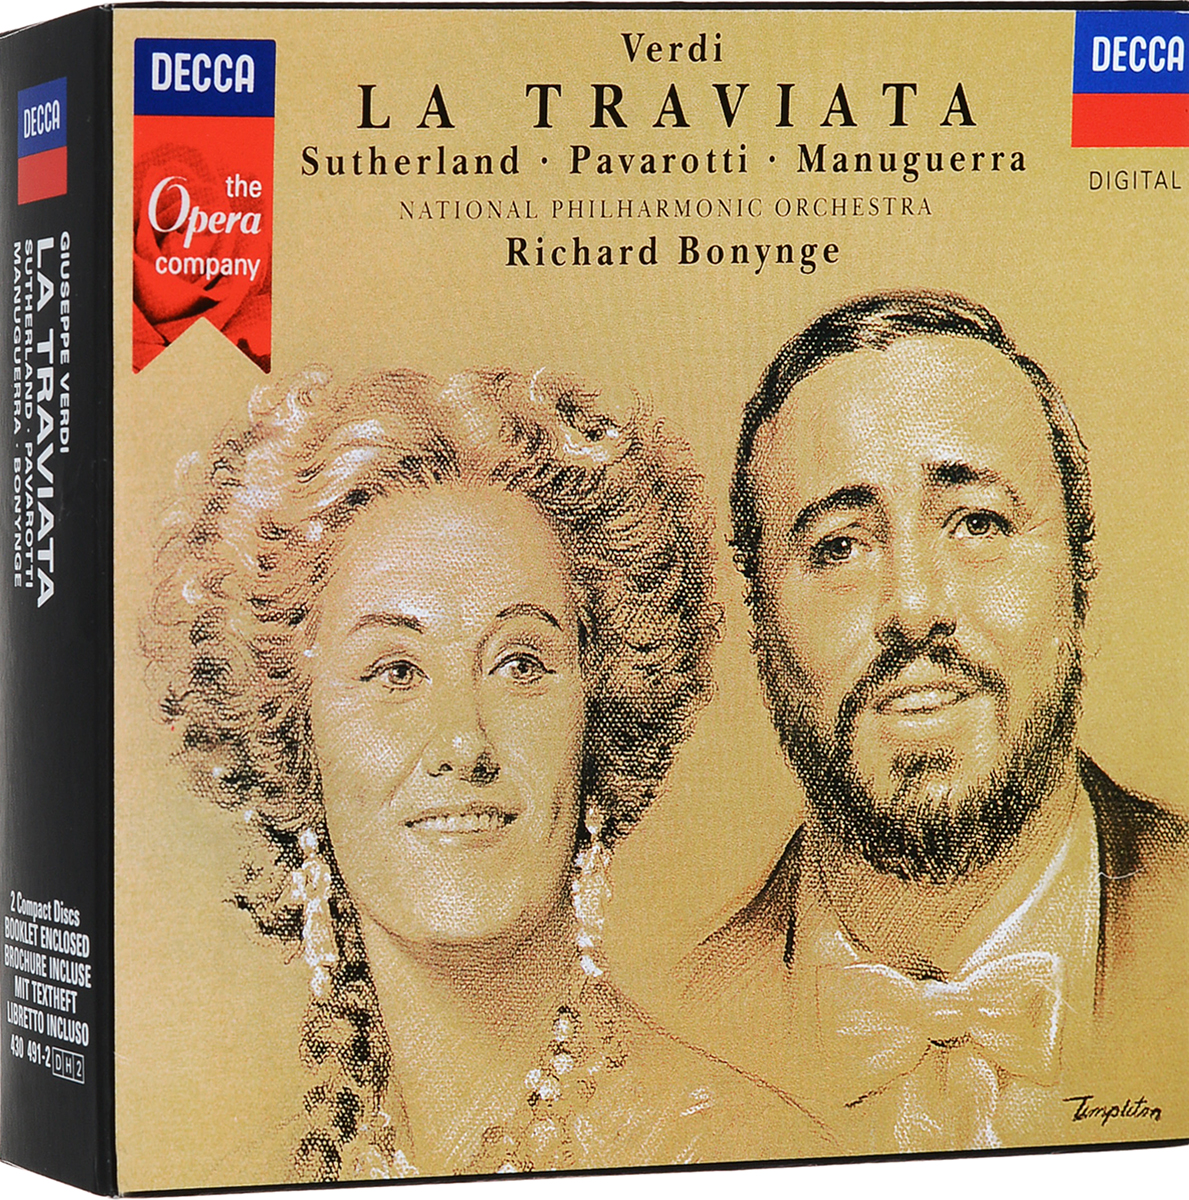 Ричард Бонинг Richard Bonynge. Verdi: La Traviata (2 CD) la traviata venice